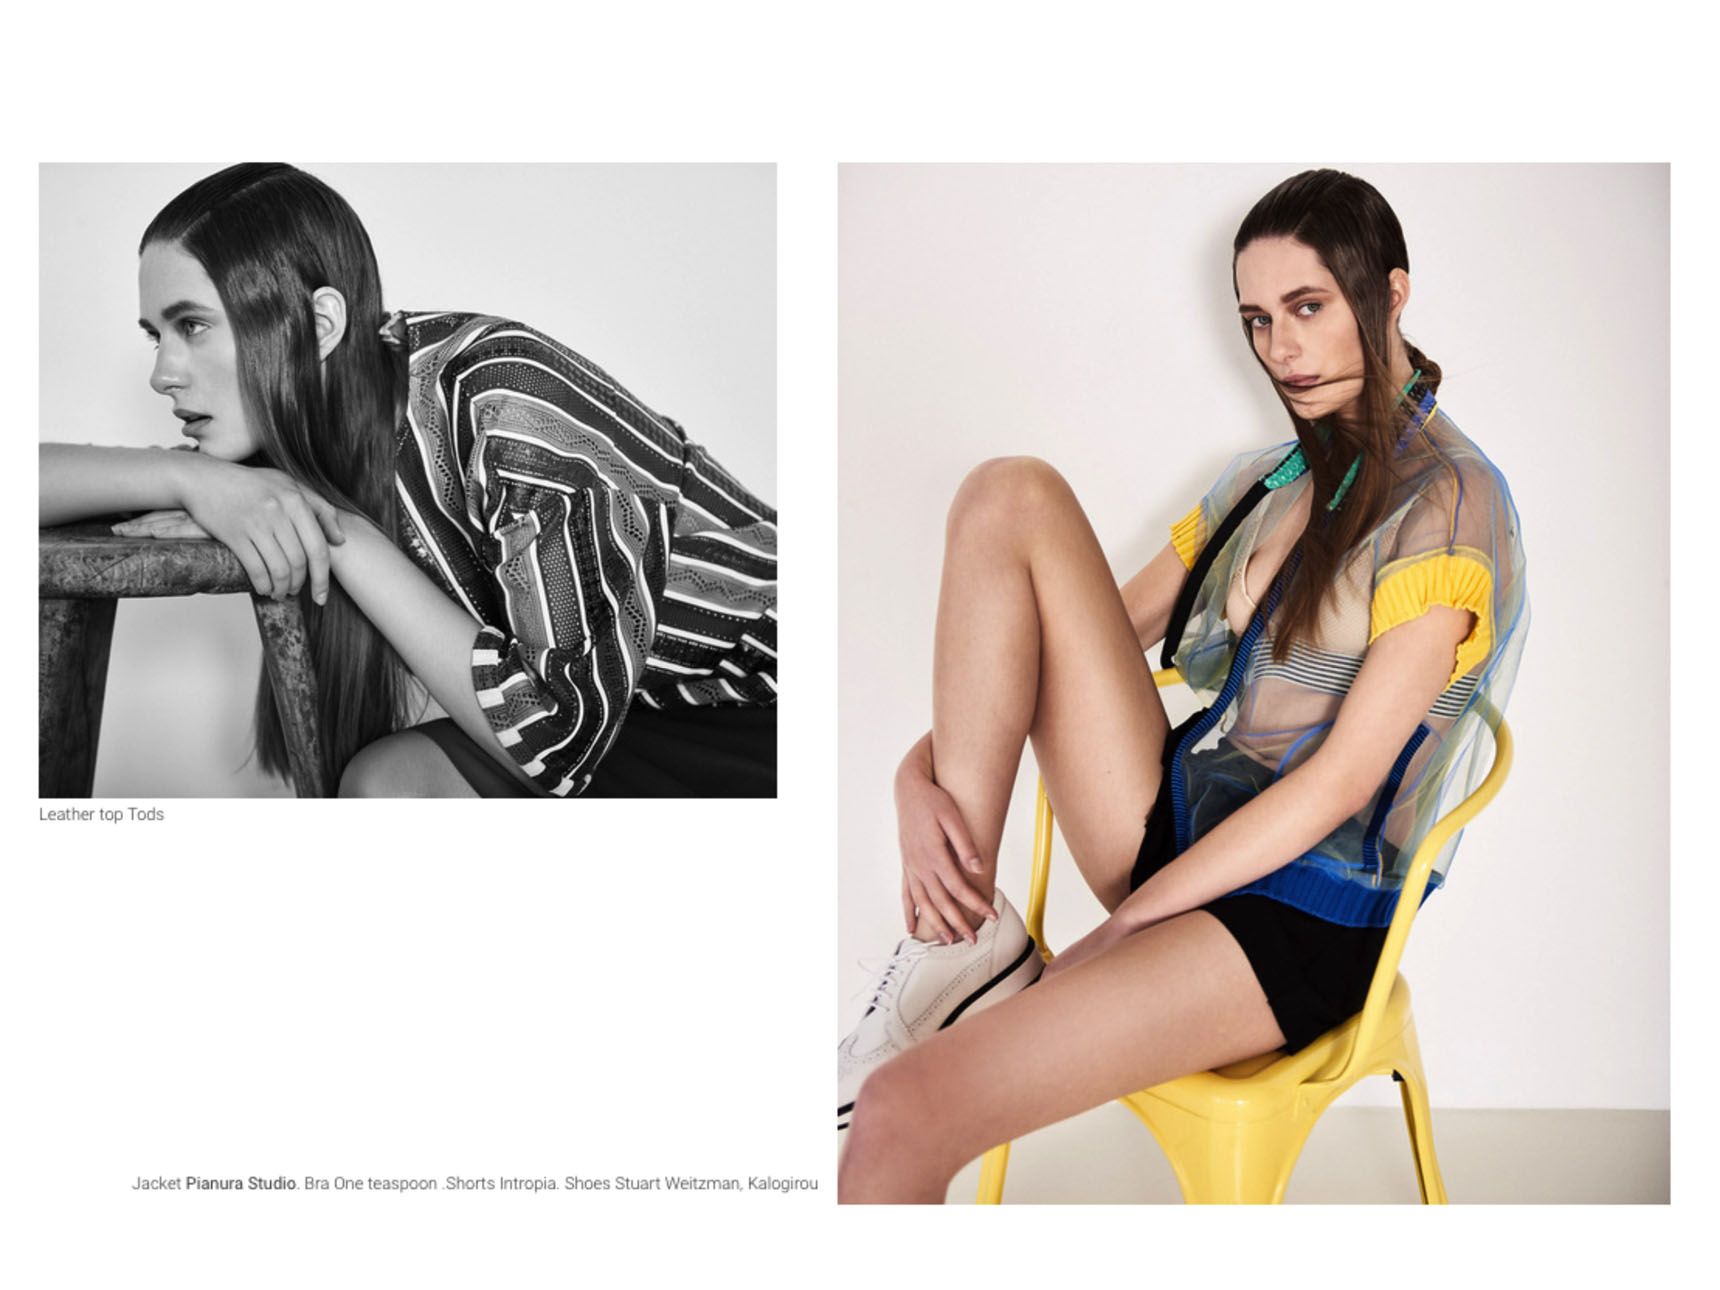 Anna is channelling the spirit of spring for The Code Mag.